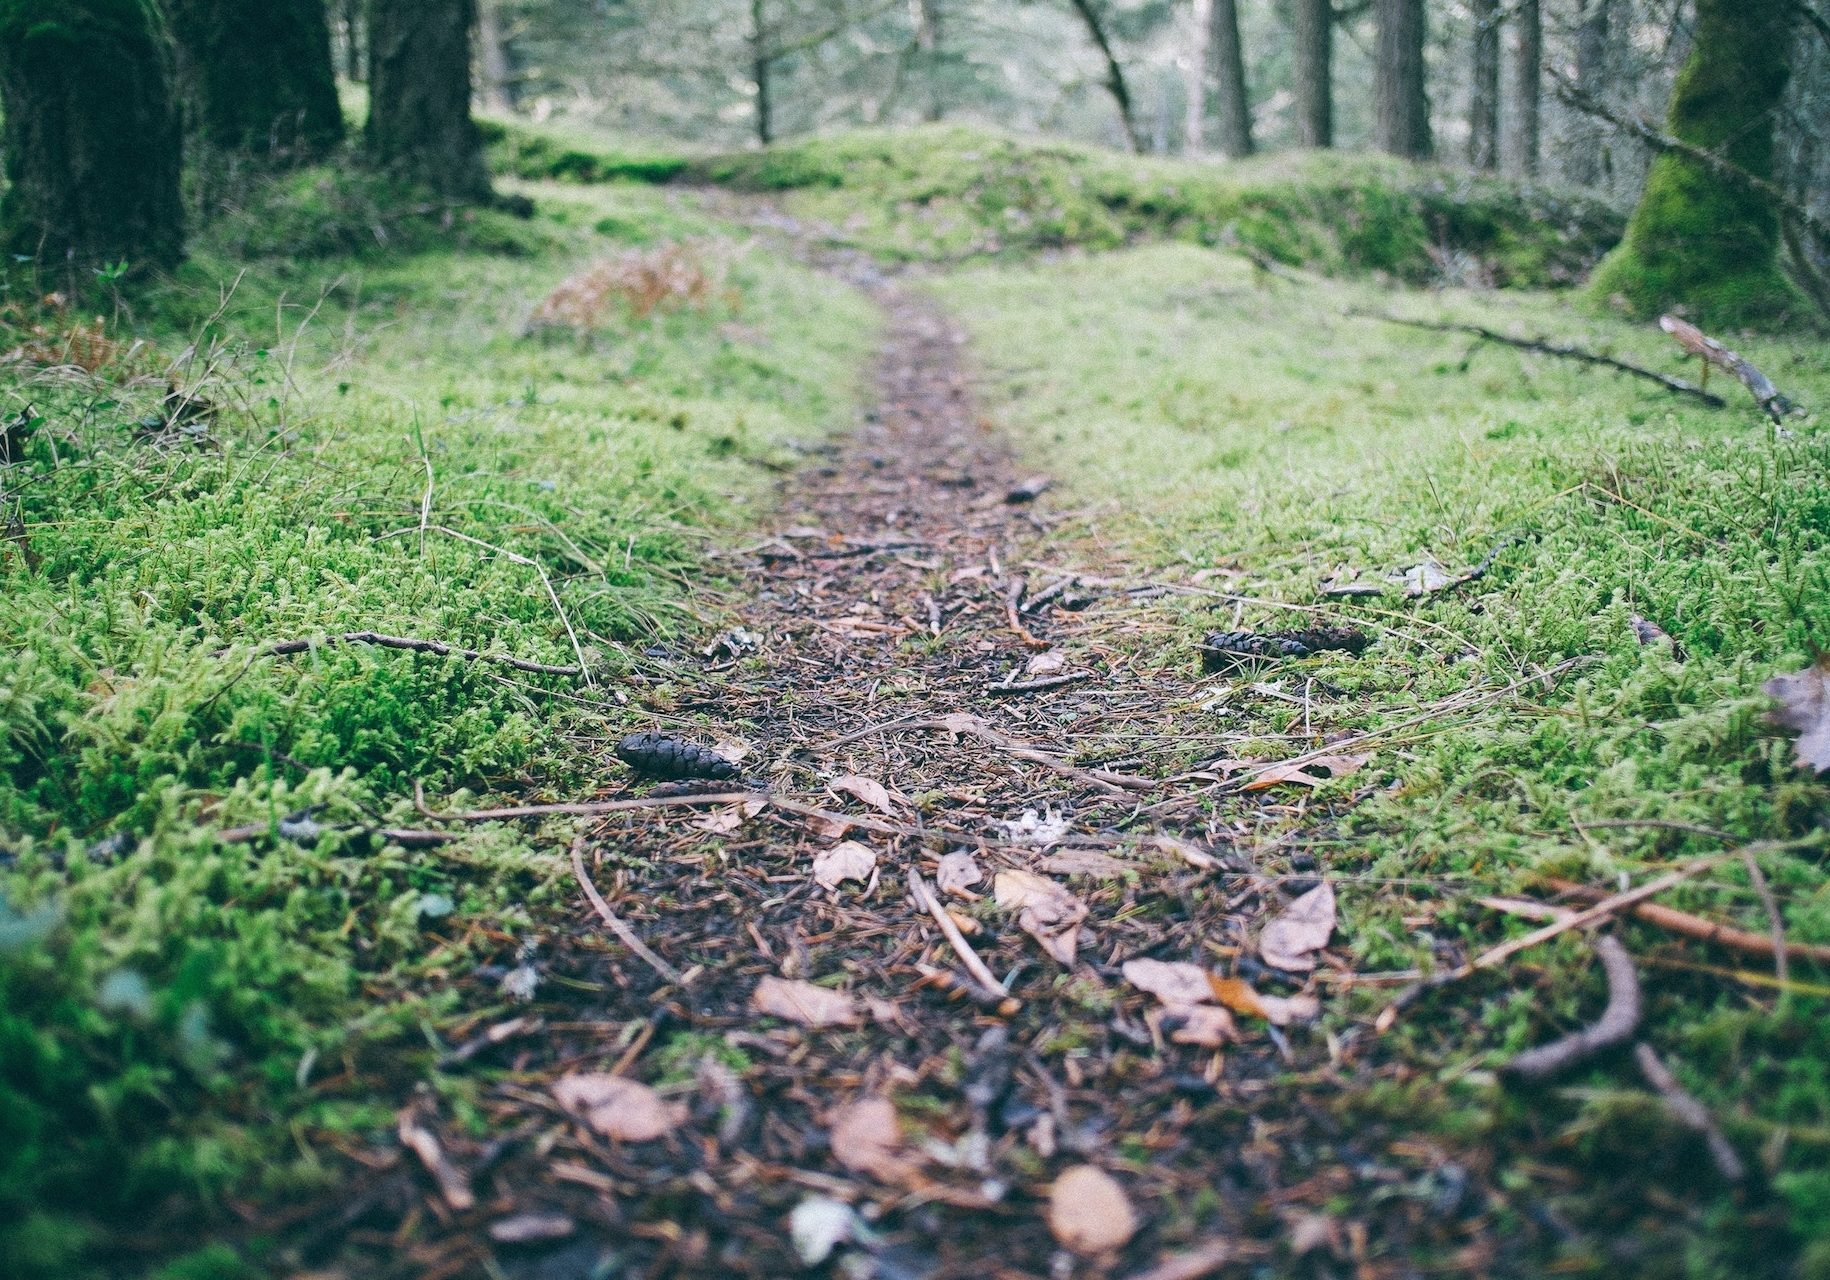 Path-paul-jarvis-217-unsplash